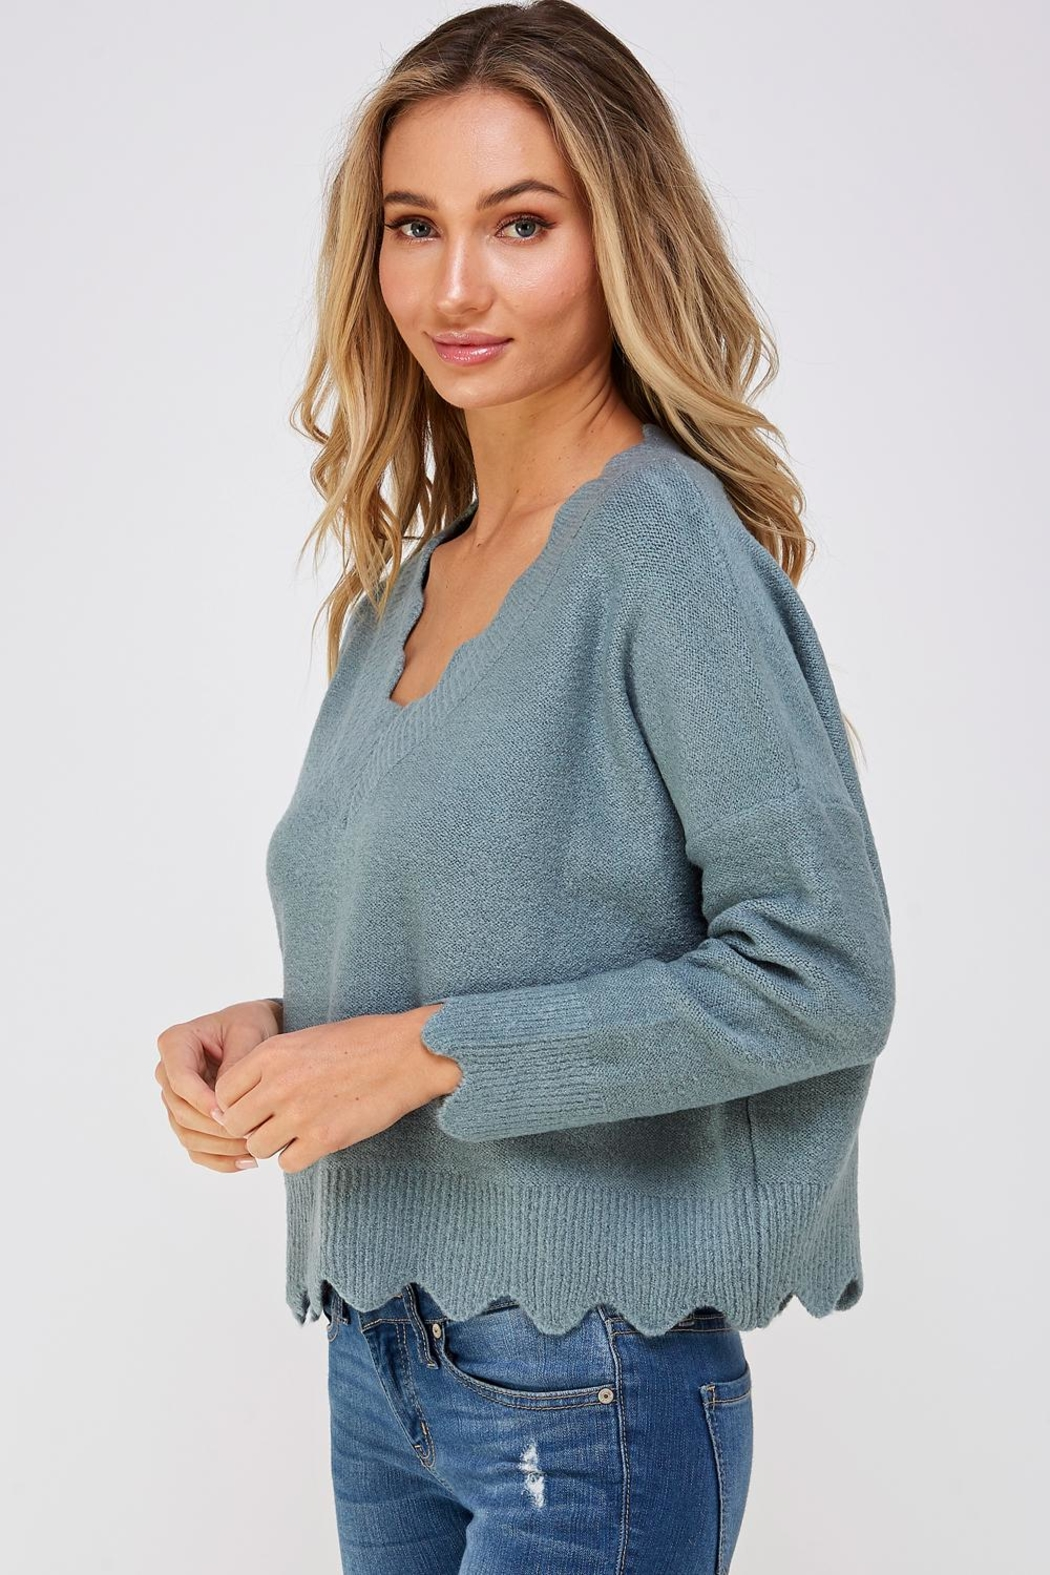 She + Sky Scallop Trim Sweater - Side Cropped Image